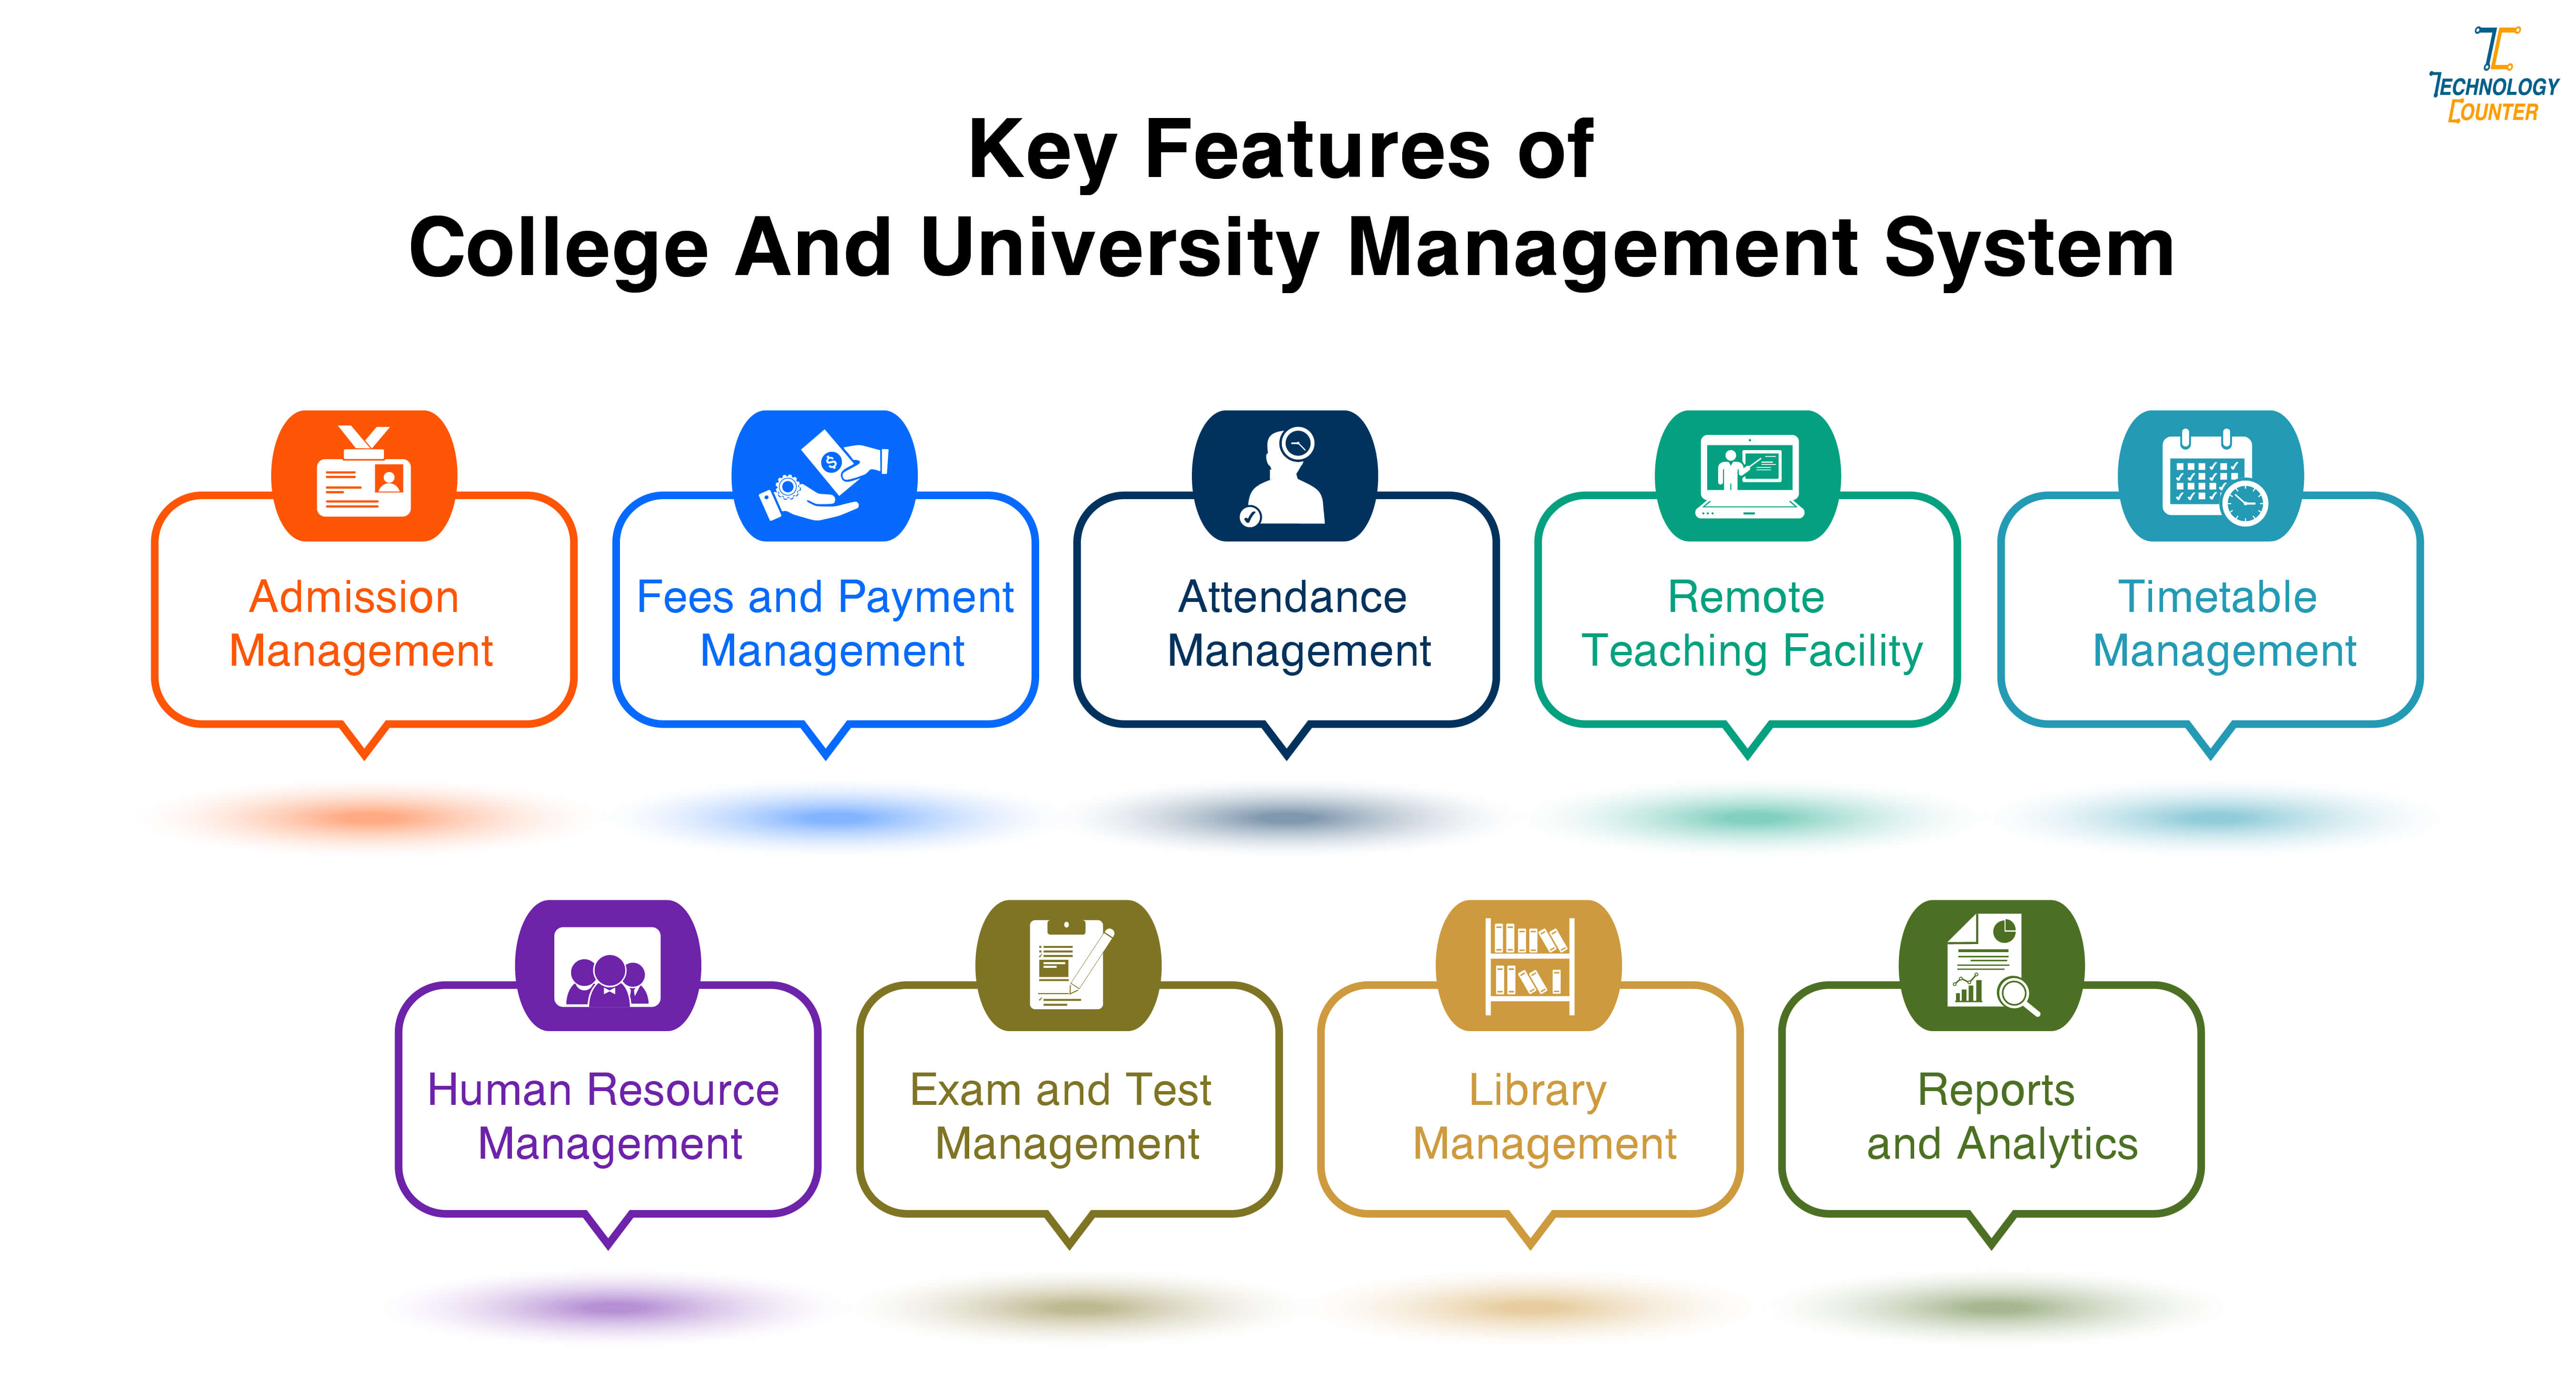 Key Features of College & University Management Software